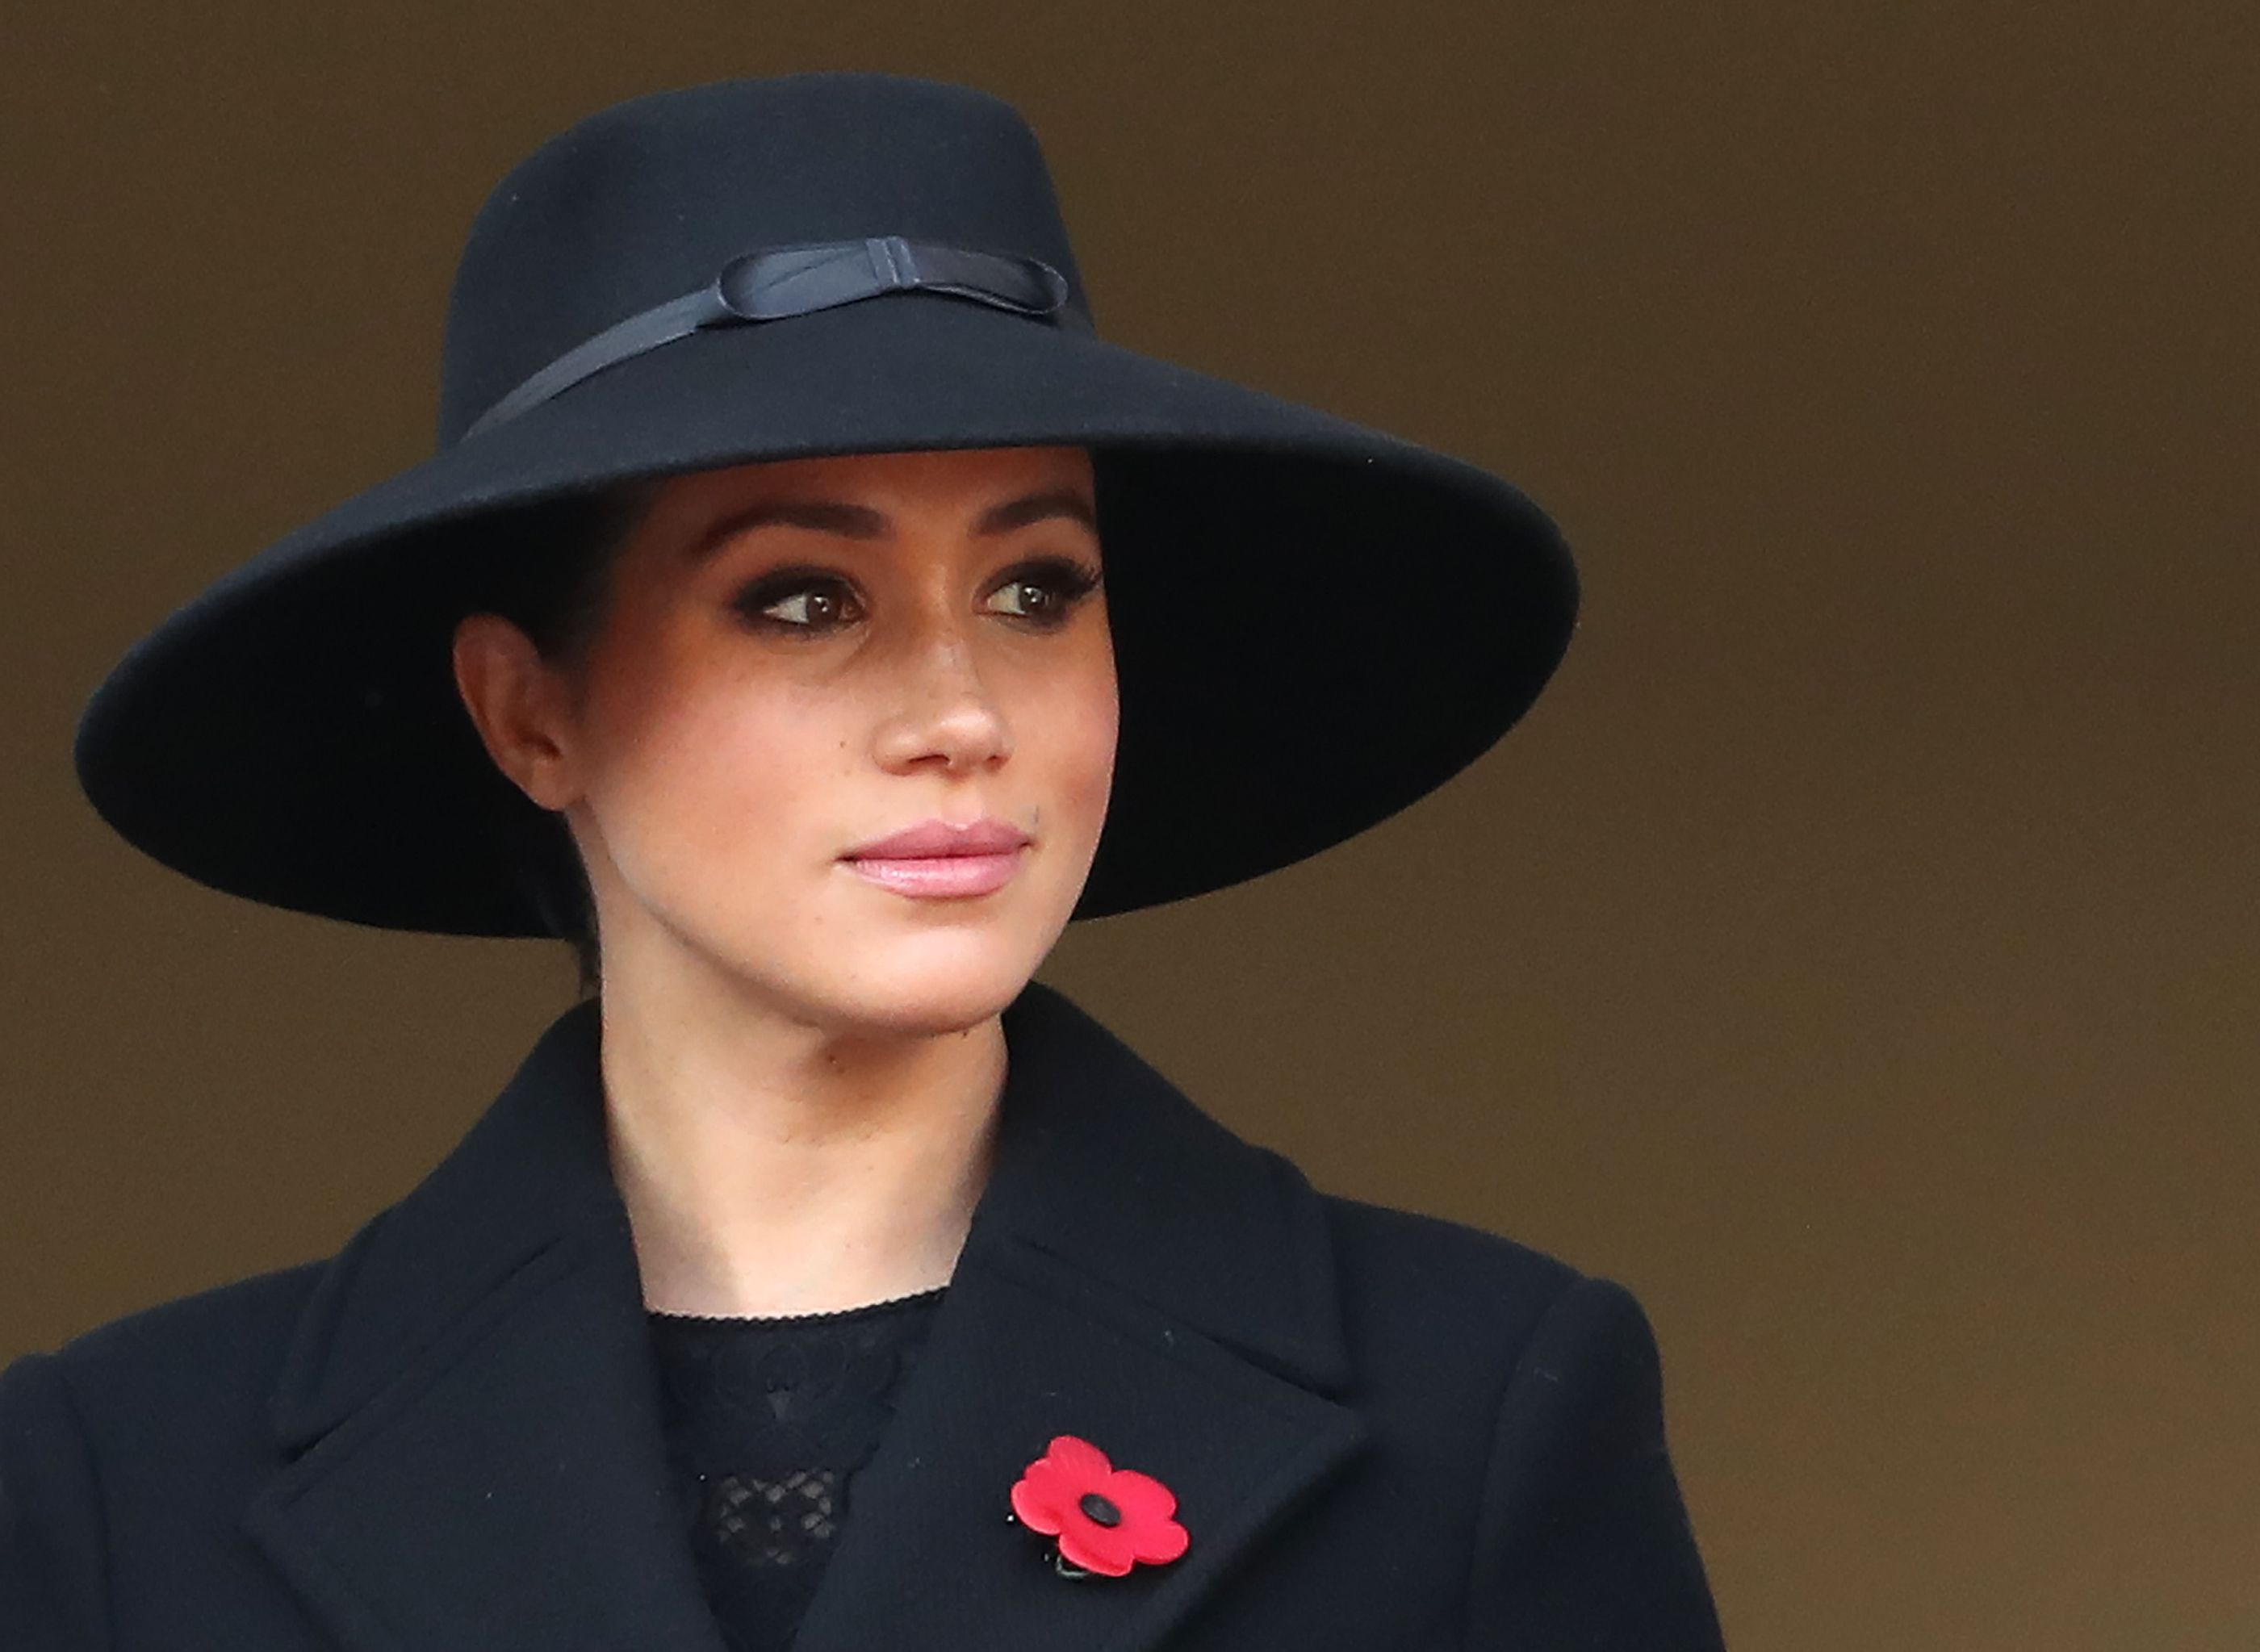 Meghan Markle in a blact hat and black outfit